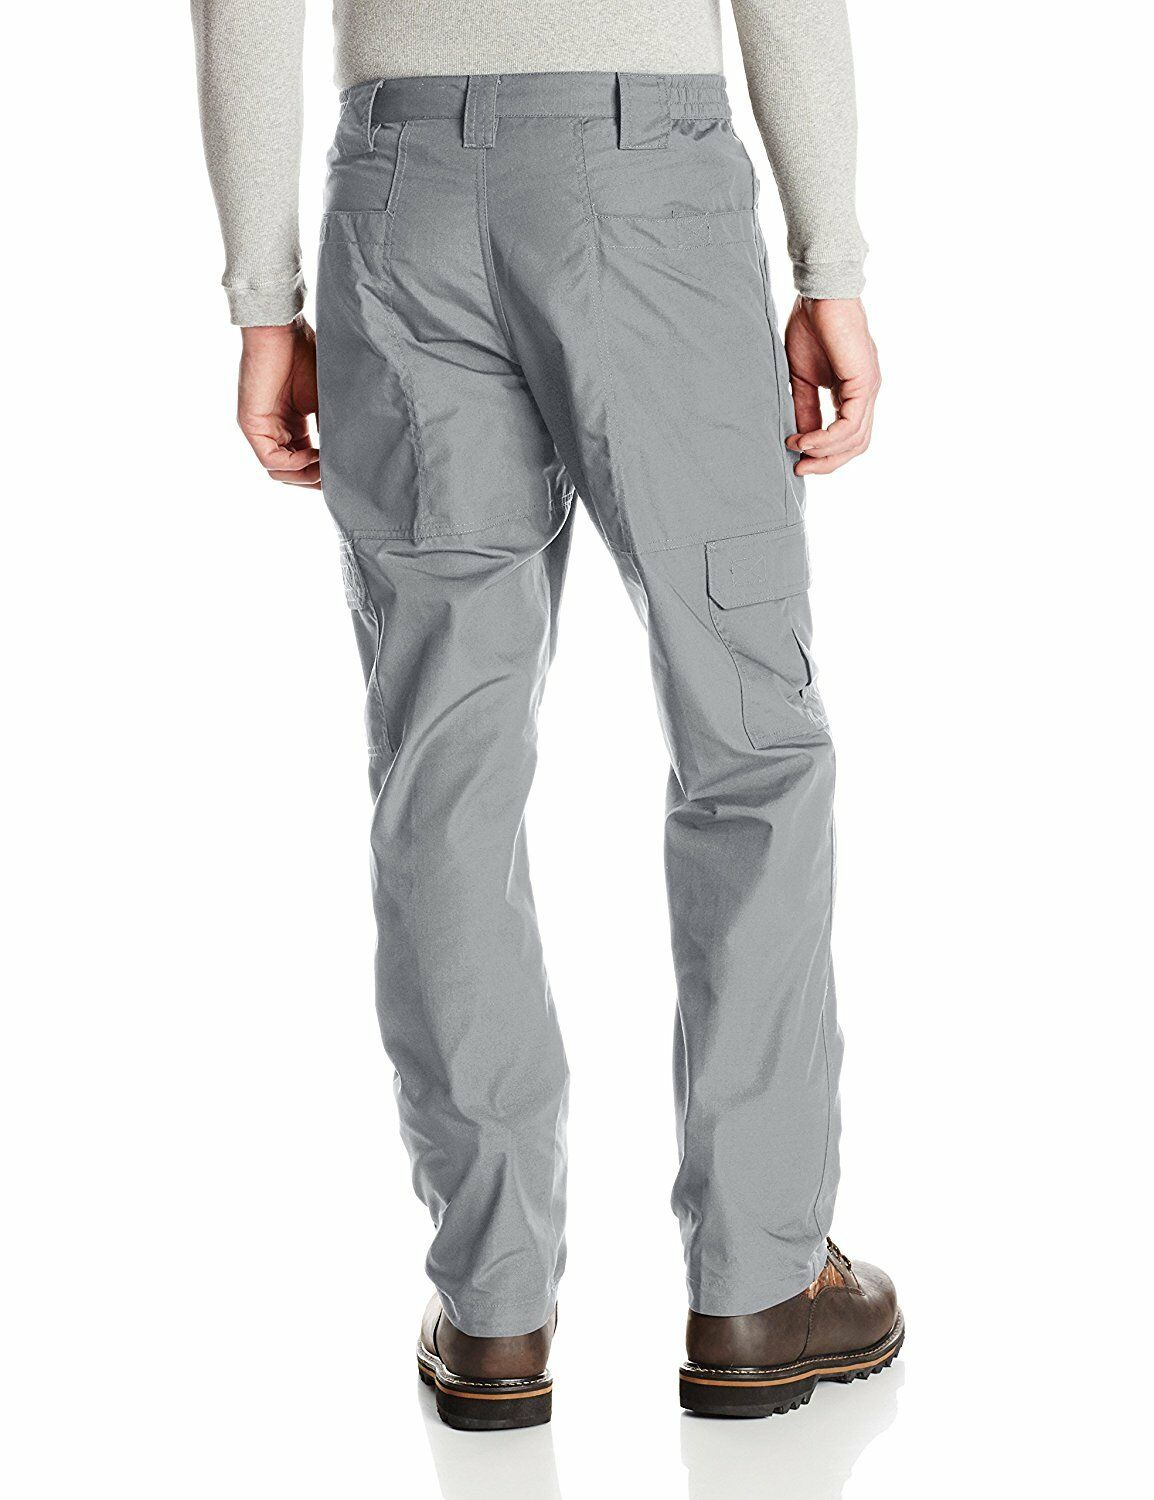 Propper F5252 Lightweight Tactical Pants, Pants, Pants, grigio, Size 34 36 b79081